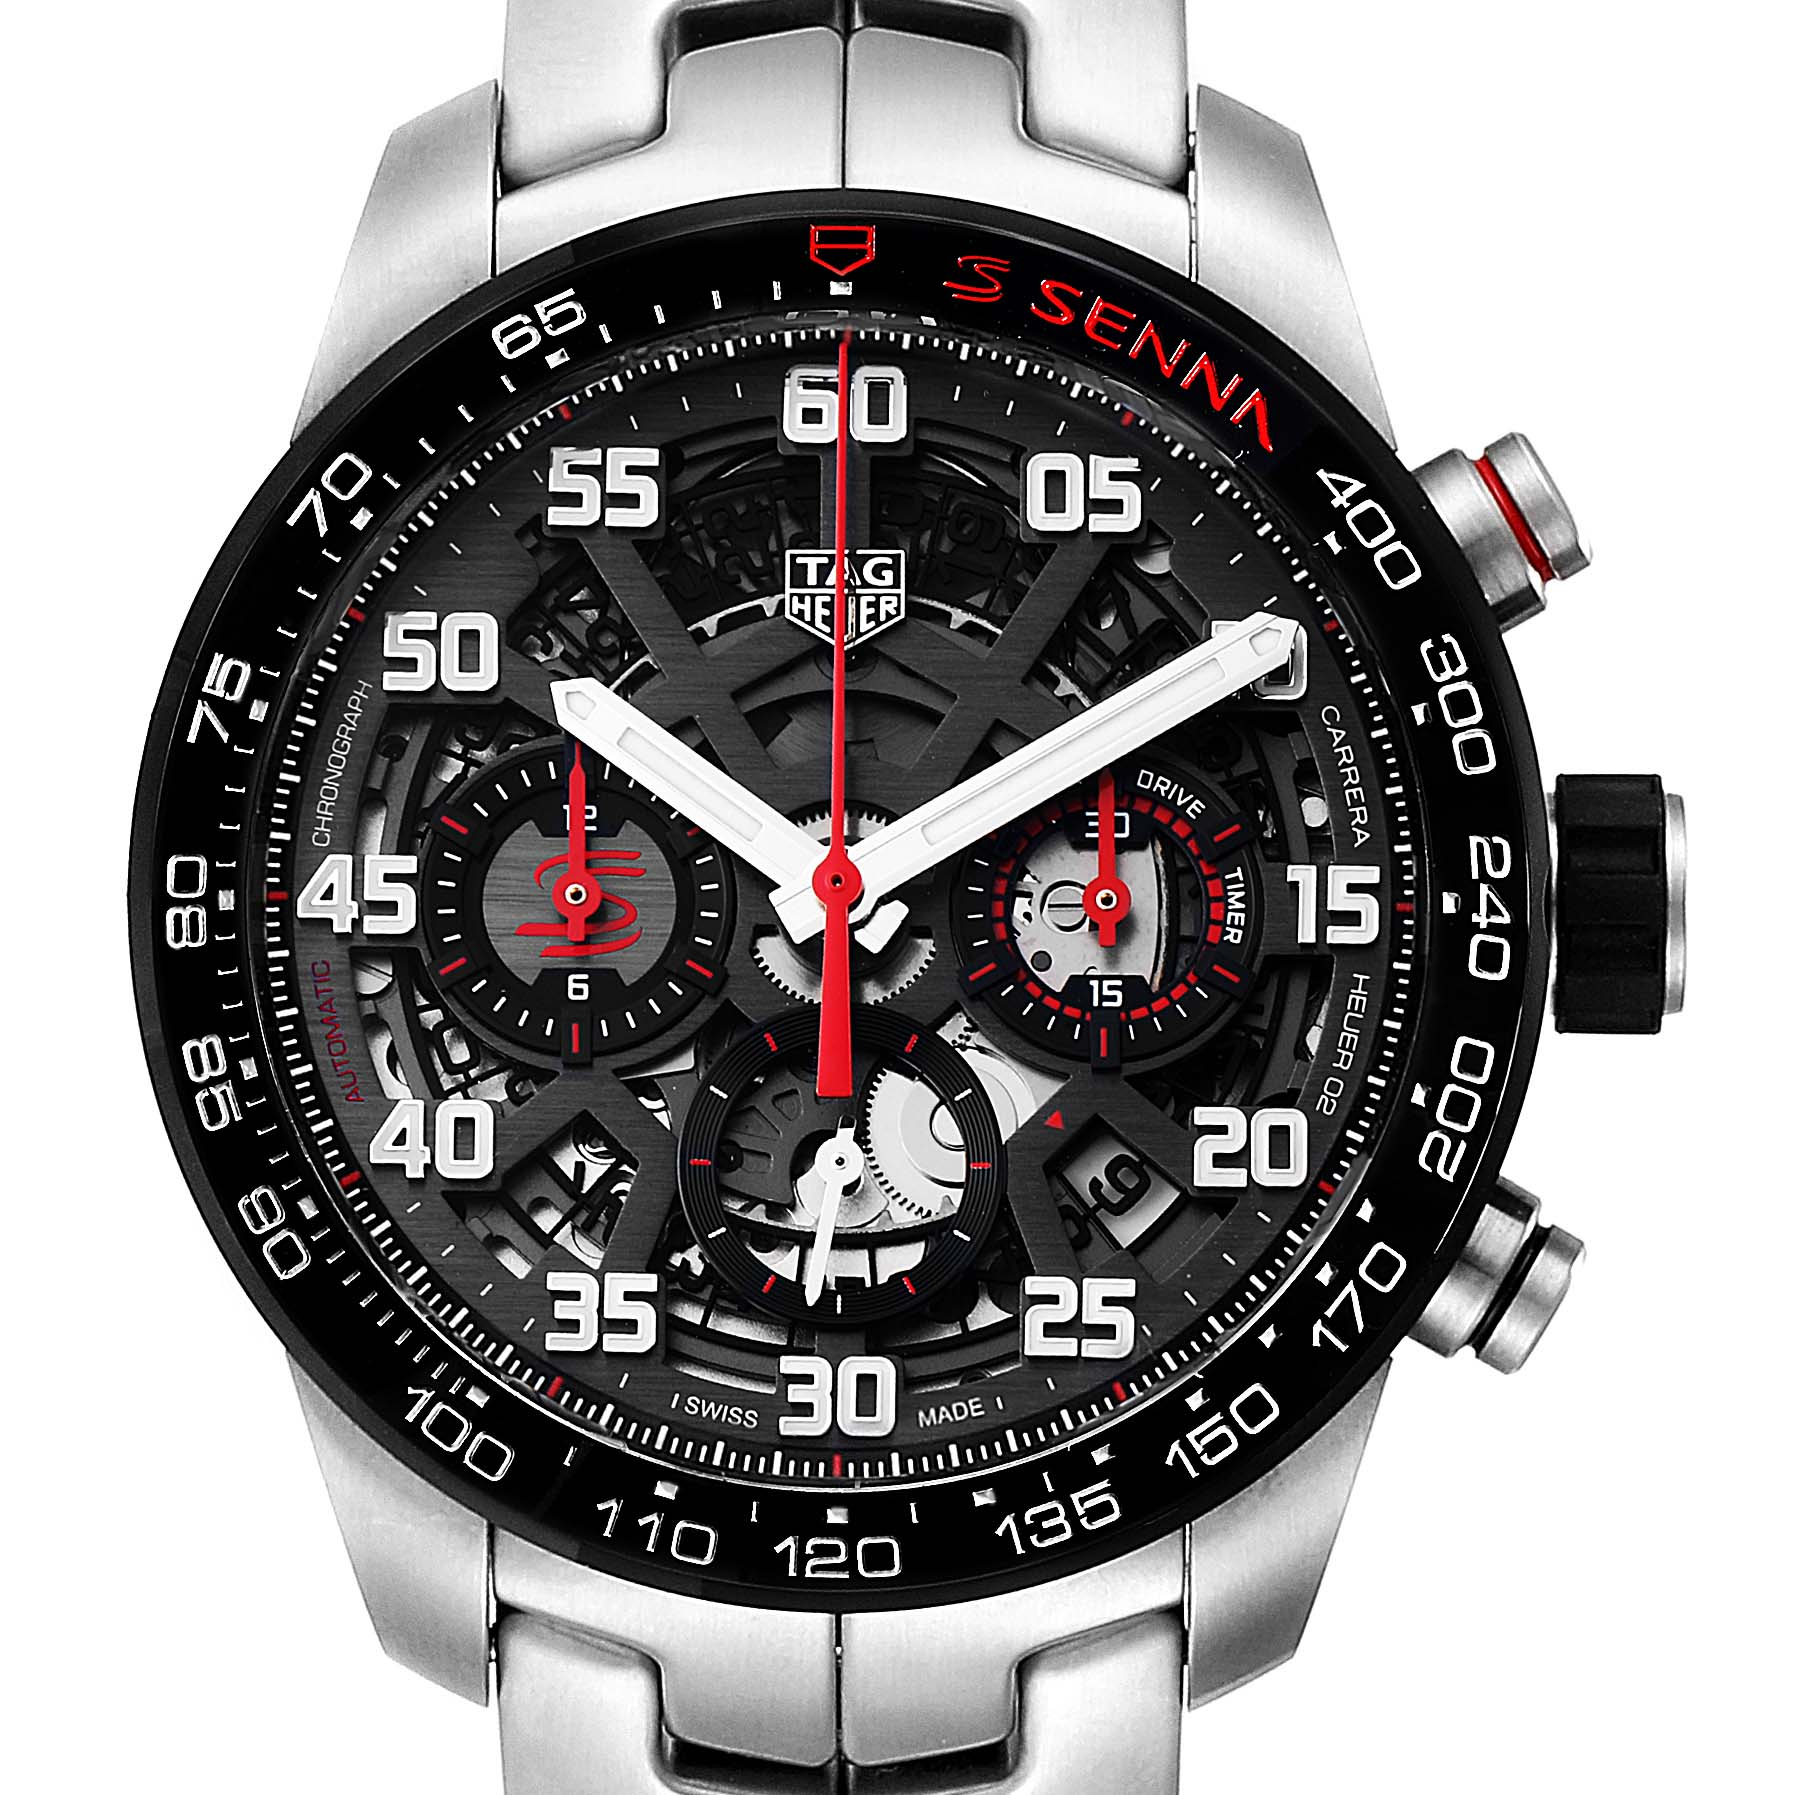 Photo of Tag Heuer Carrera Senna Special Edition Chronograph Watch CBG2013 Unworn